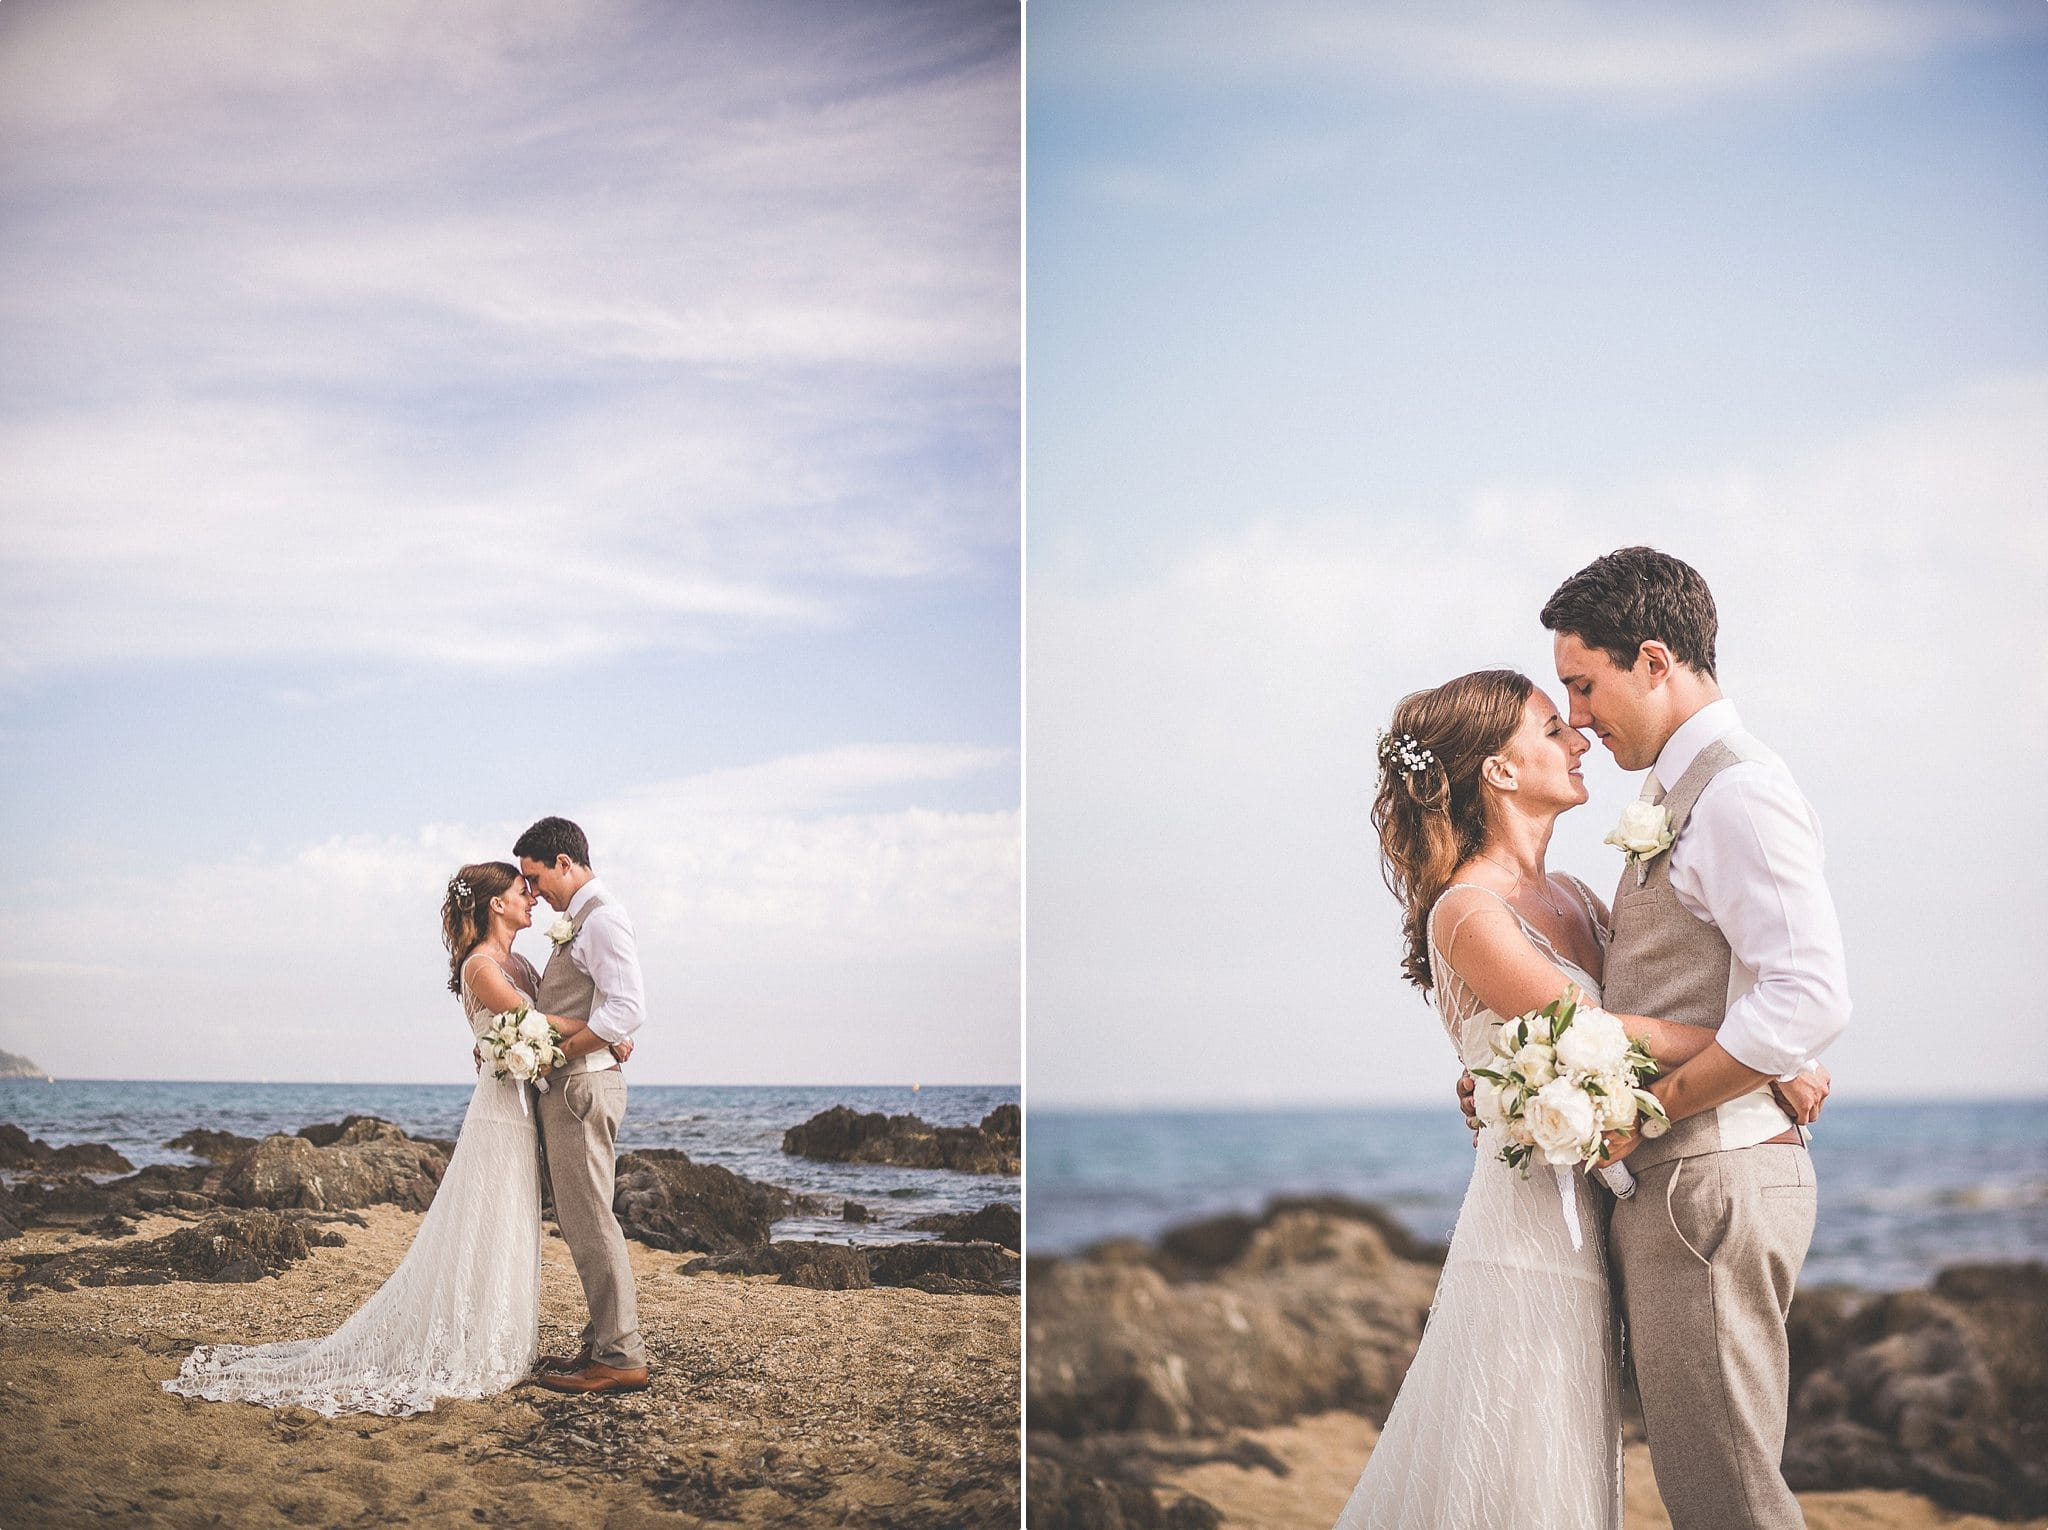 10b36d5430 Are you looking to book your gorgeous Destination Wedding Photography?  You've come to the right place